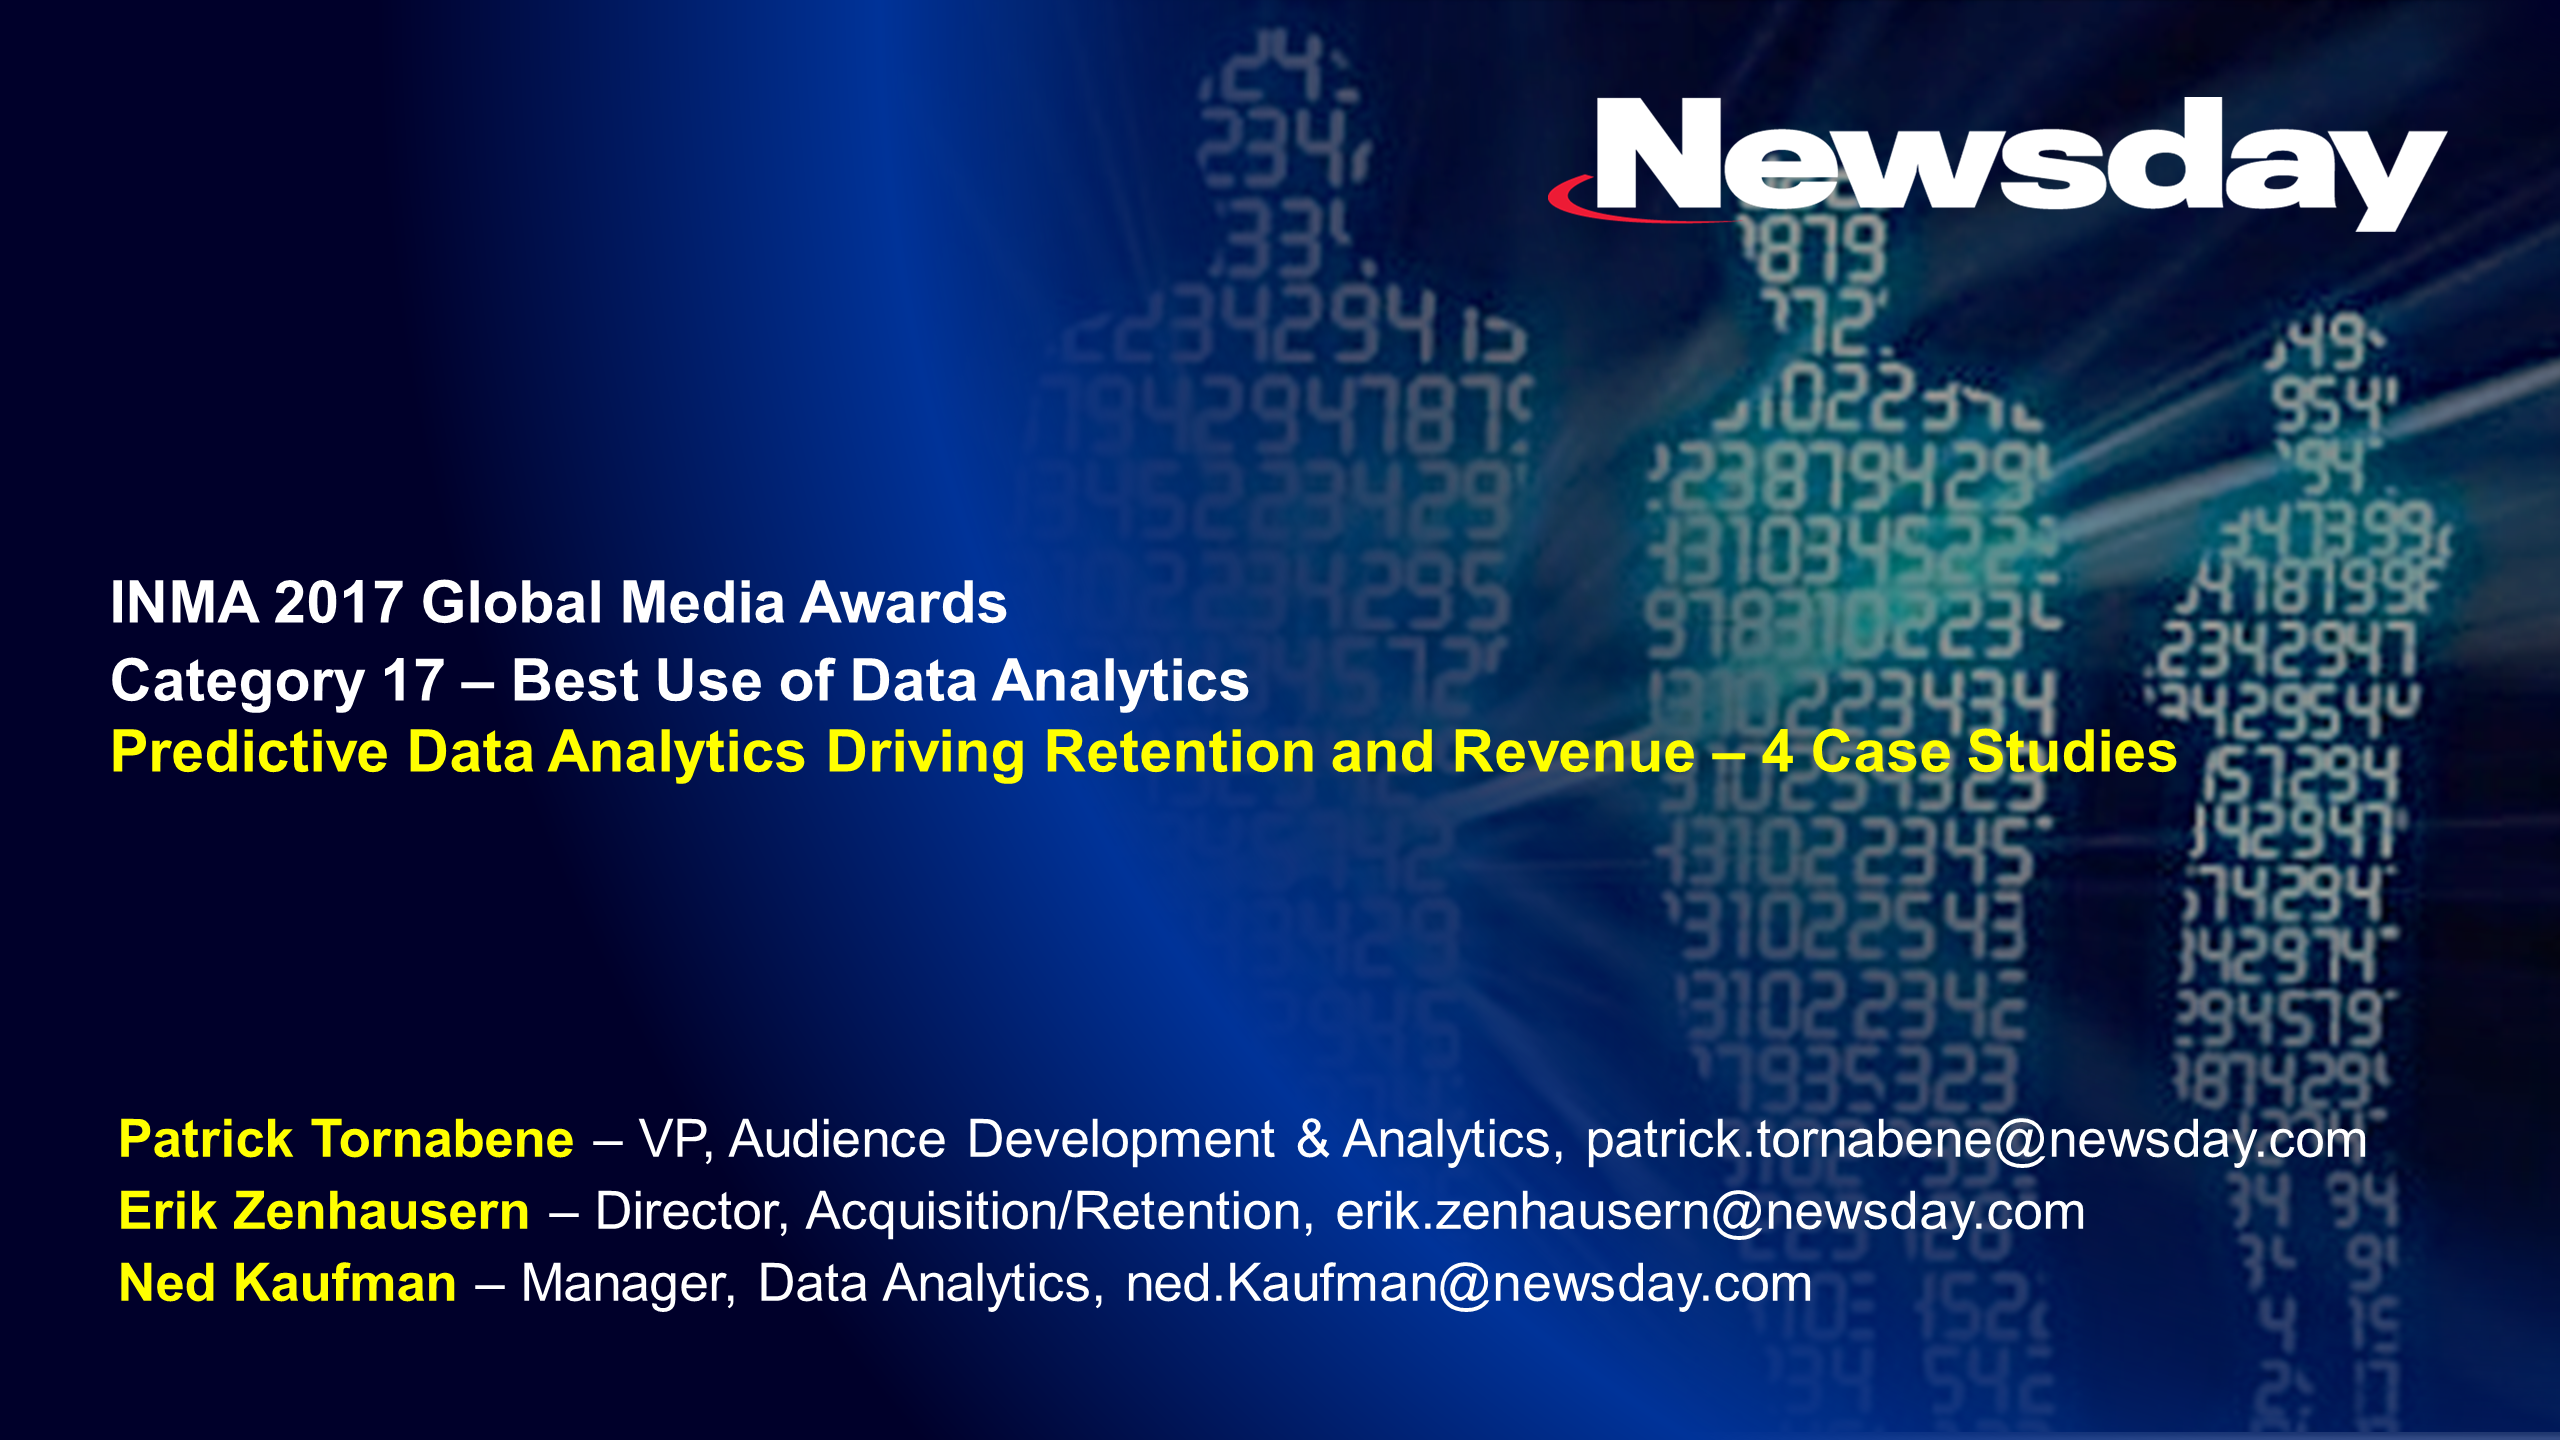 Newsday's Predictive Data Analytics Driving Subscriber Retention